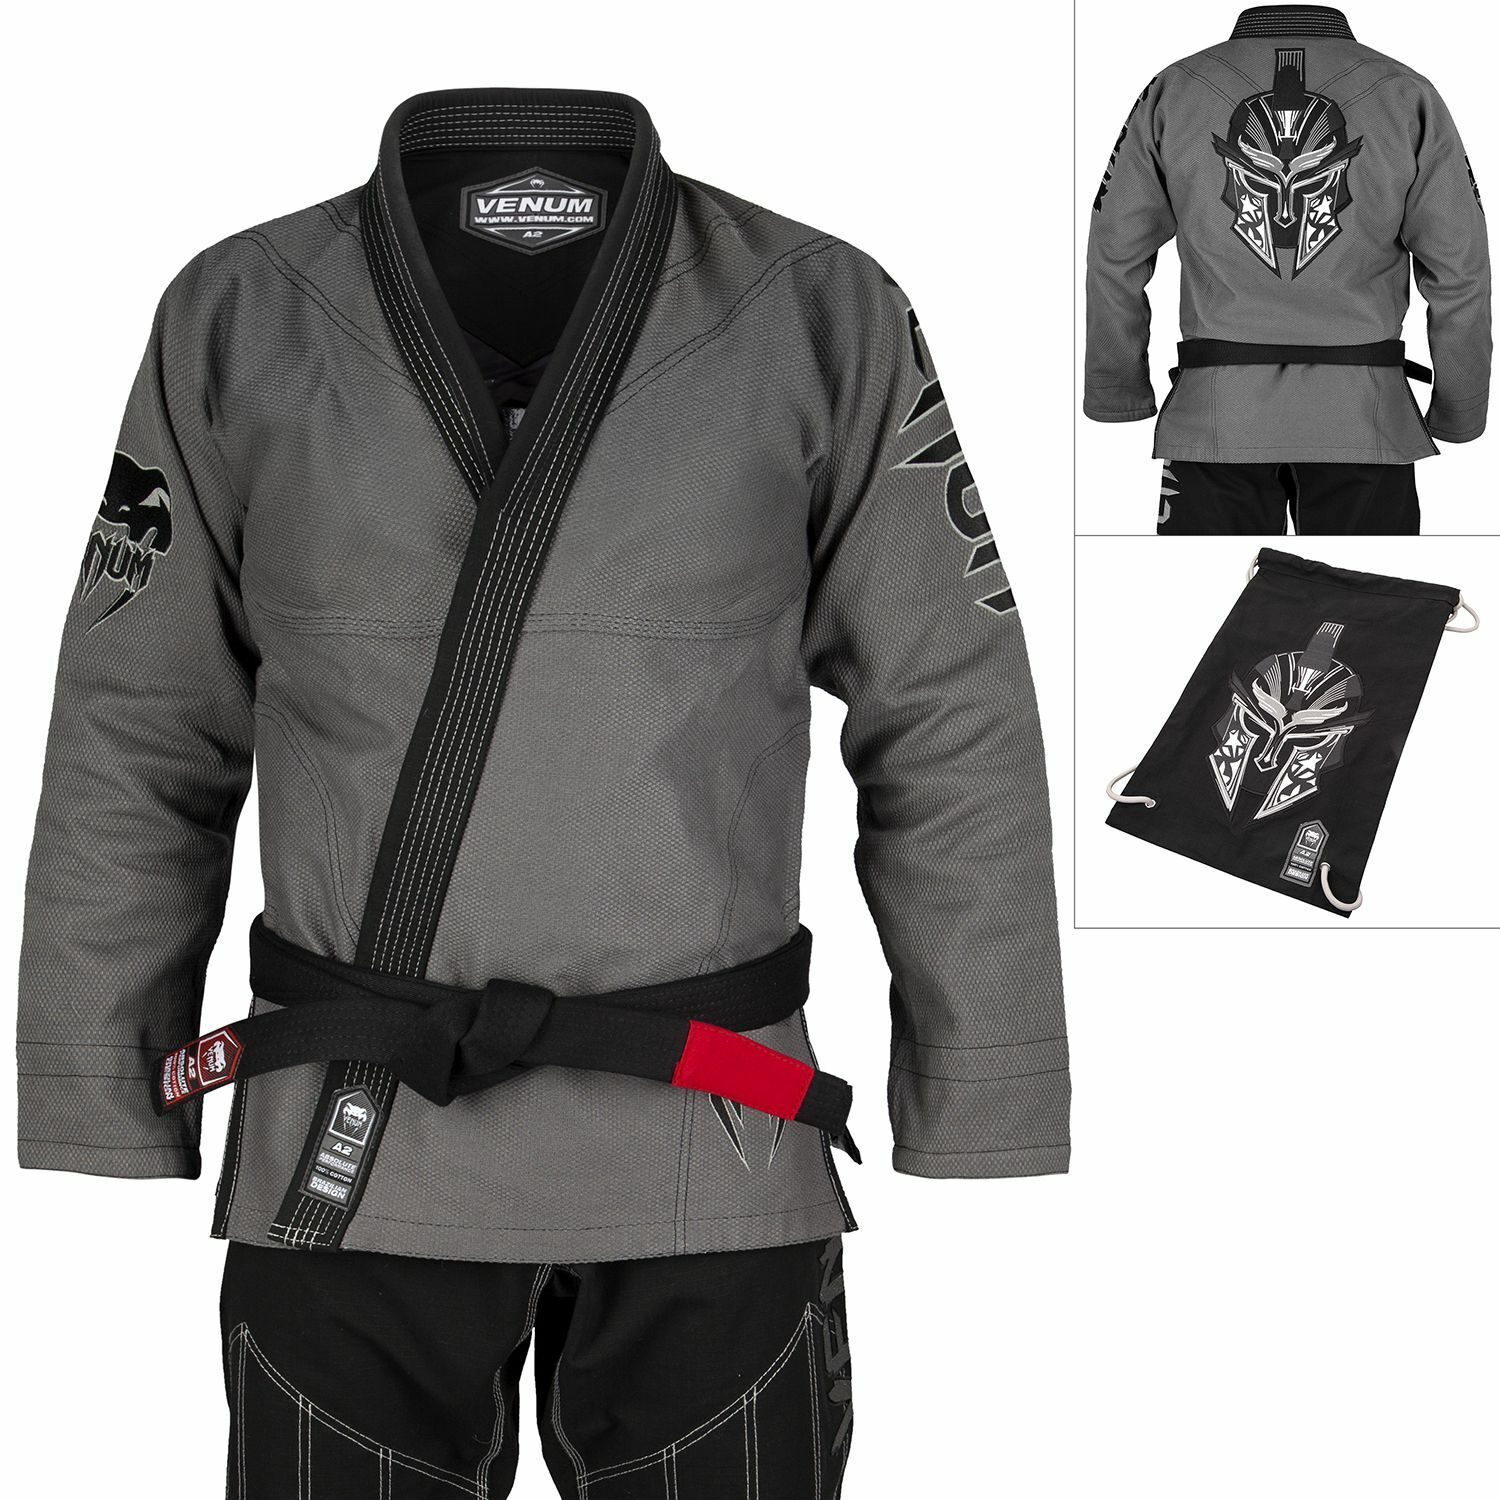 Venum Special Edition Gladiator BJJ Gi With Bag Size A4